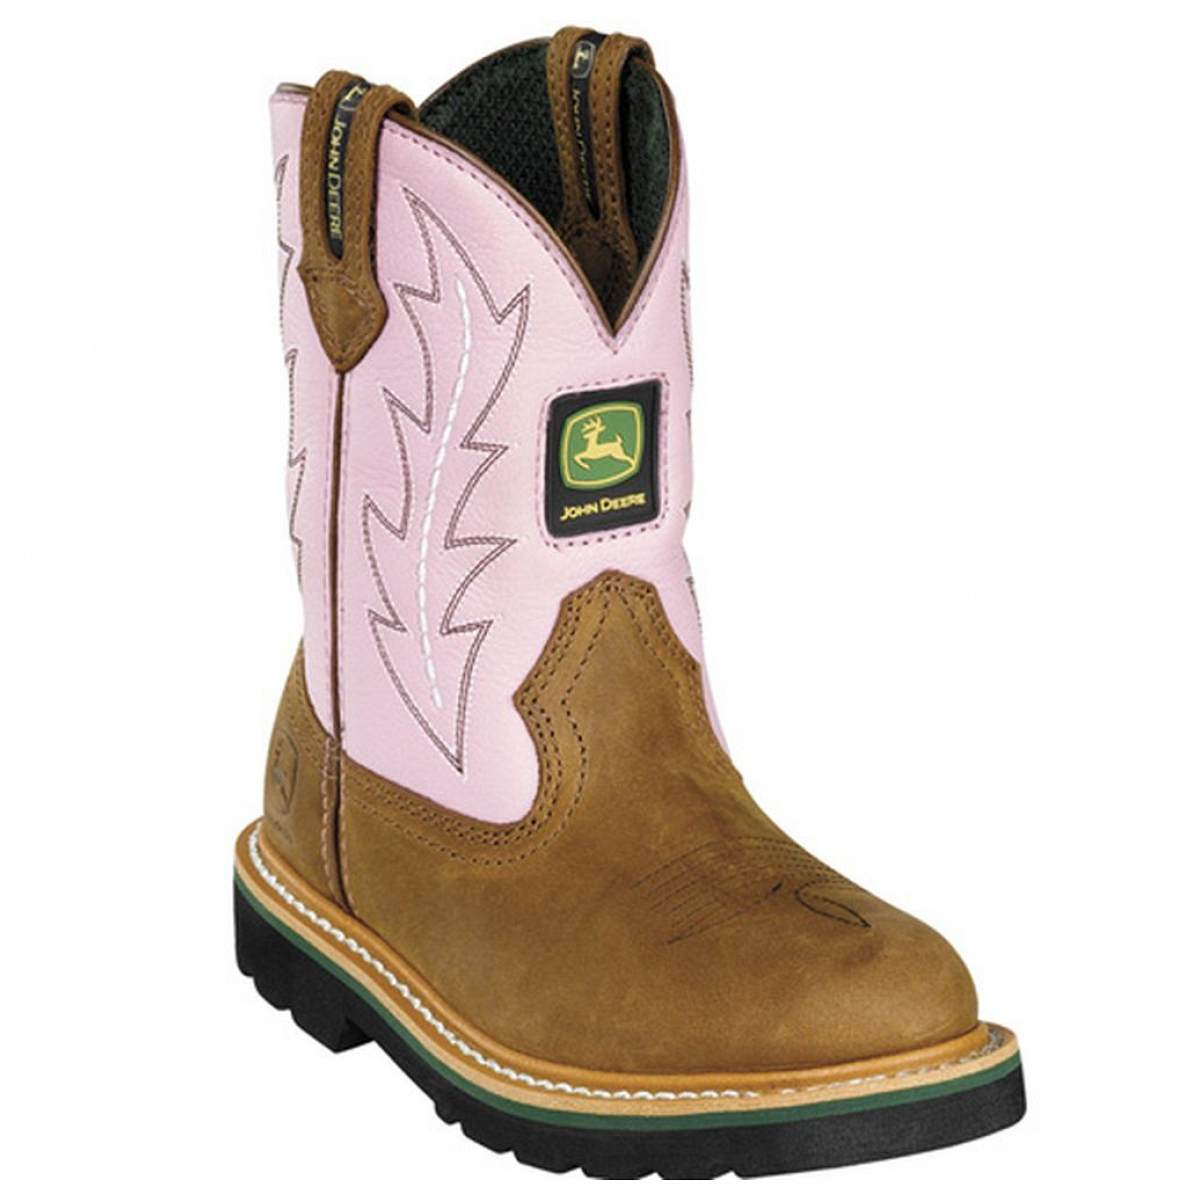 John Deere John Deere Little Girls Pink Leather Top Western Boots Size ...